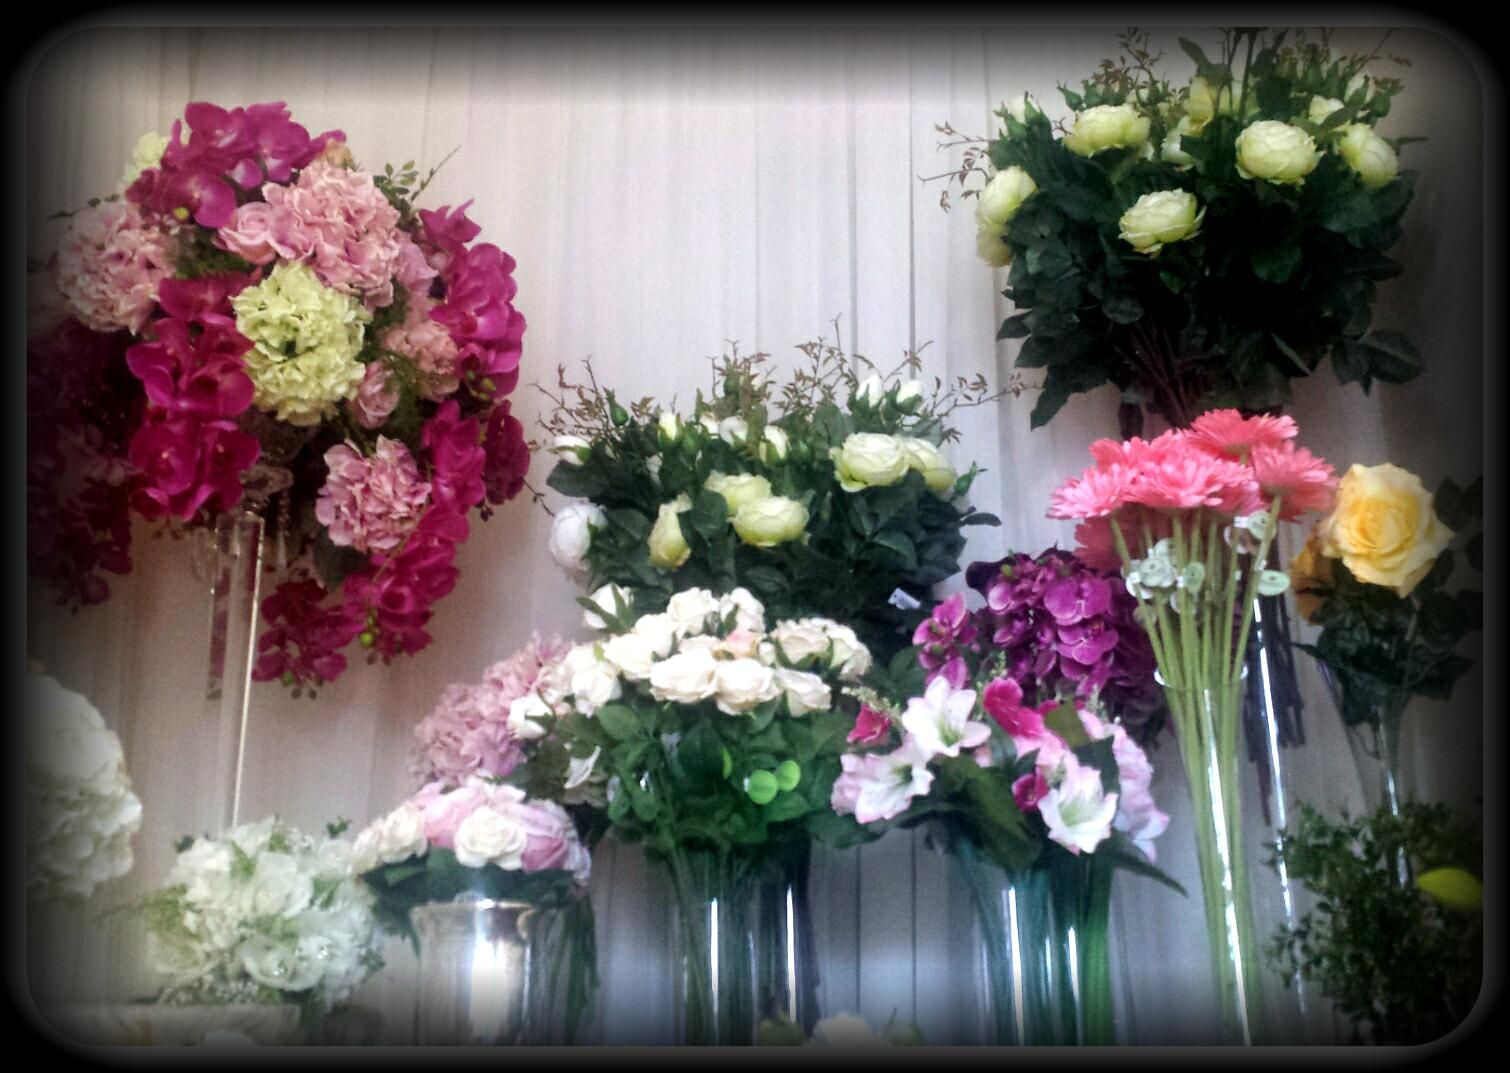 In house flower designs save money by renting good quality silk in house flower designs save money by renting good quality silk flowers we mightylinksfo Gallery